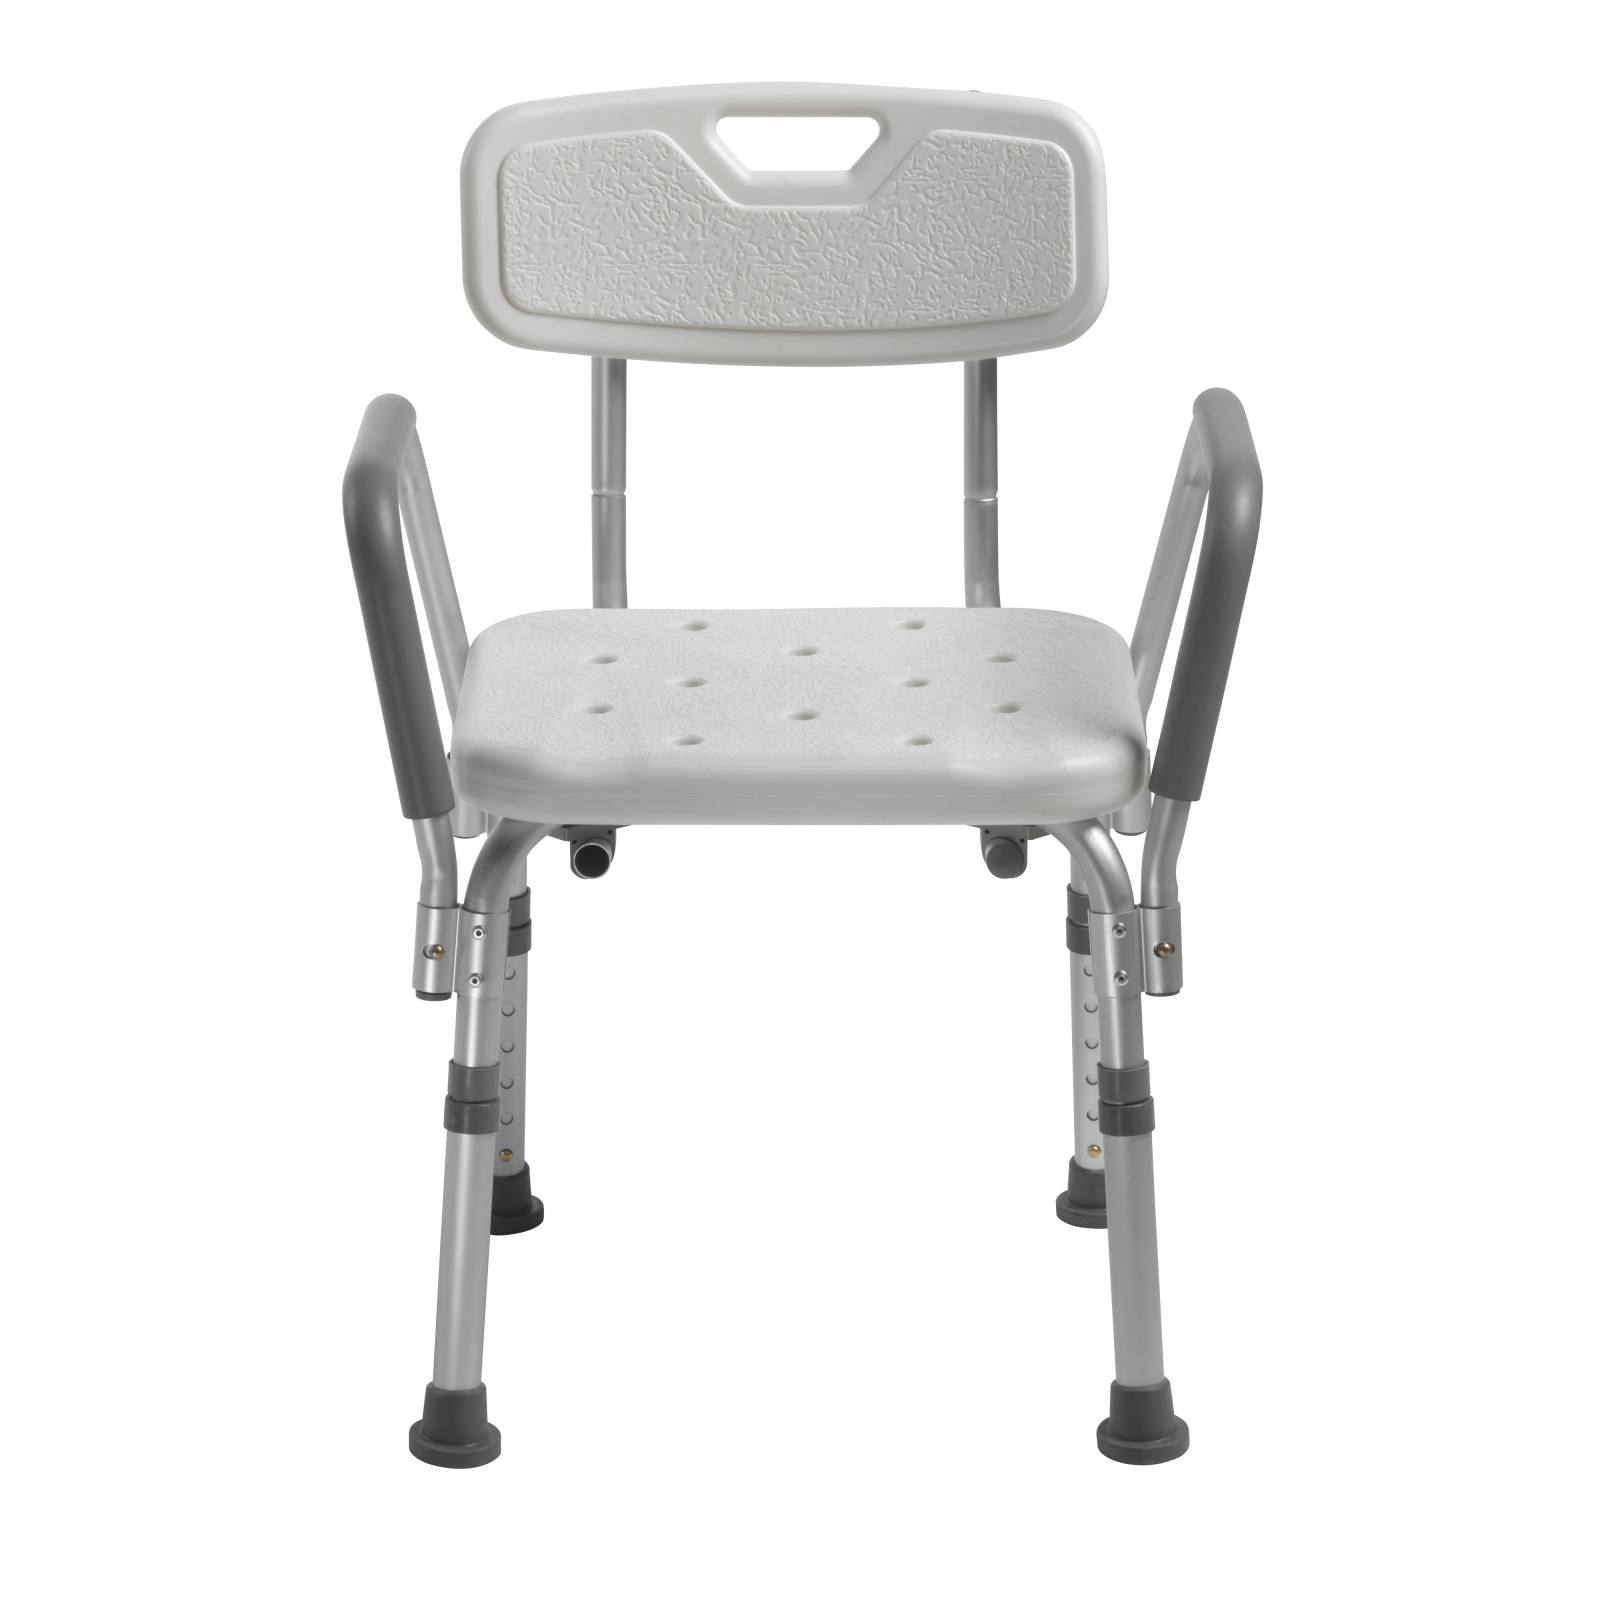 shower chair with wheels and removable arms blue dining chairs uk drive back padded from mobility medical equipment